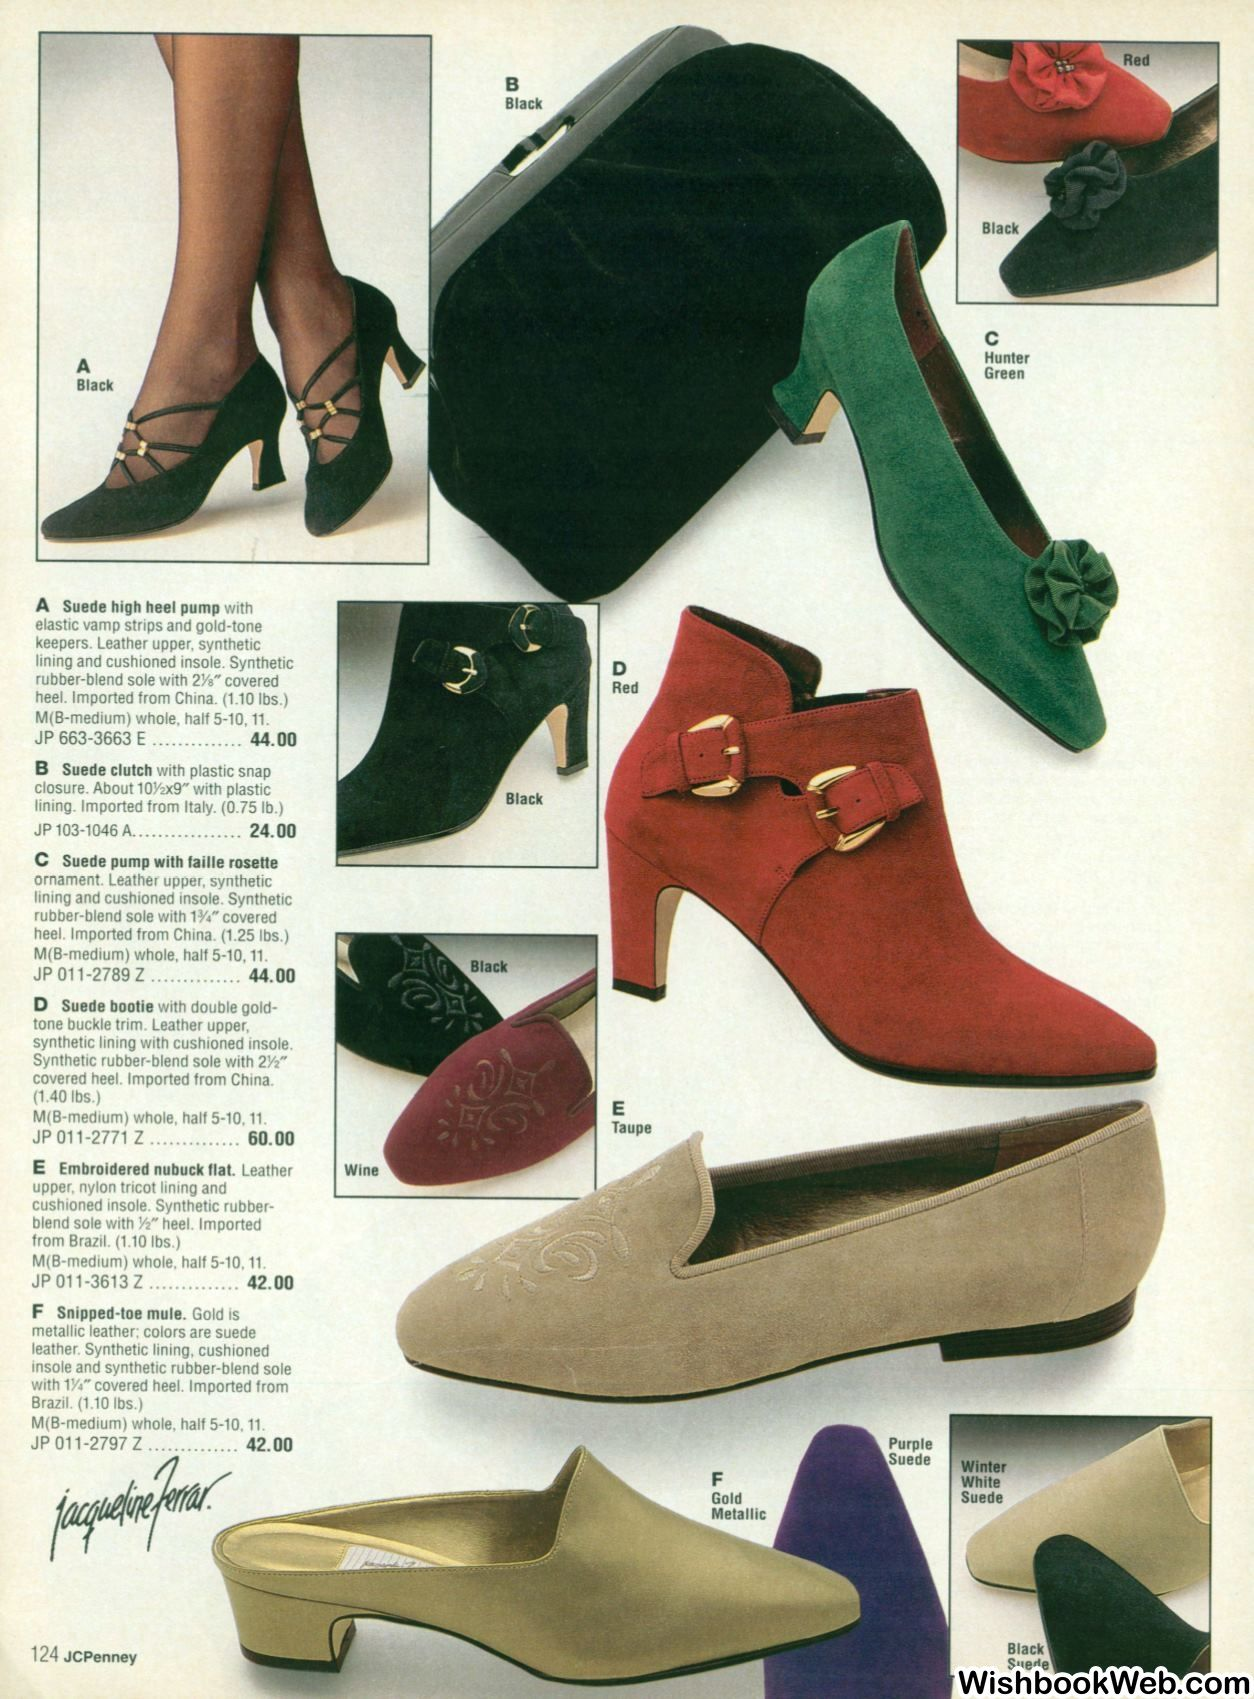 Pin By Superalto 1992 On Generation X Series Accessories In 2020 Jcpenney Christmas Catalog Jcpenney Christmas Catalogs